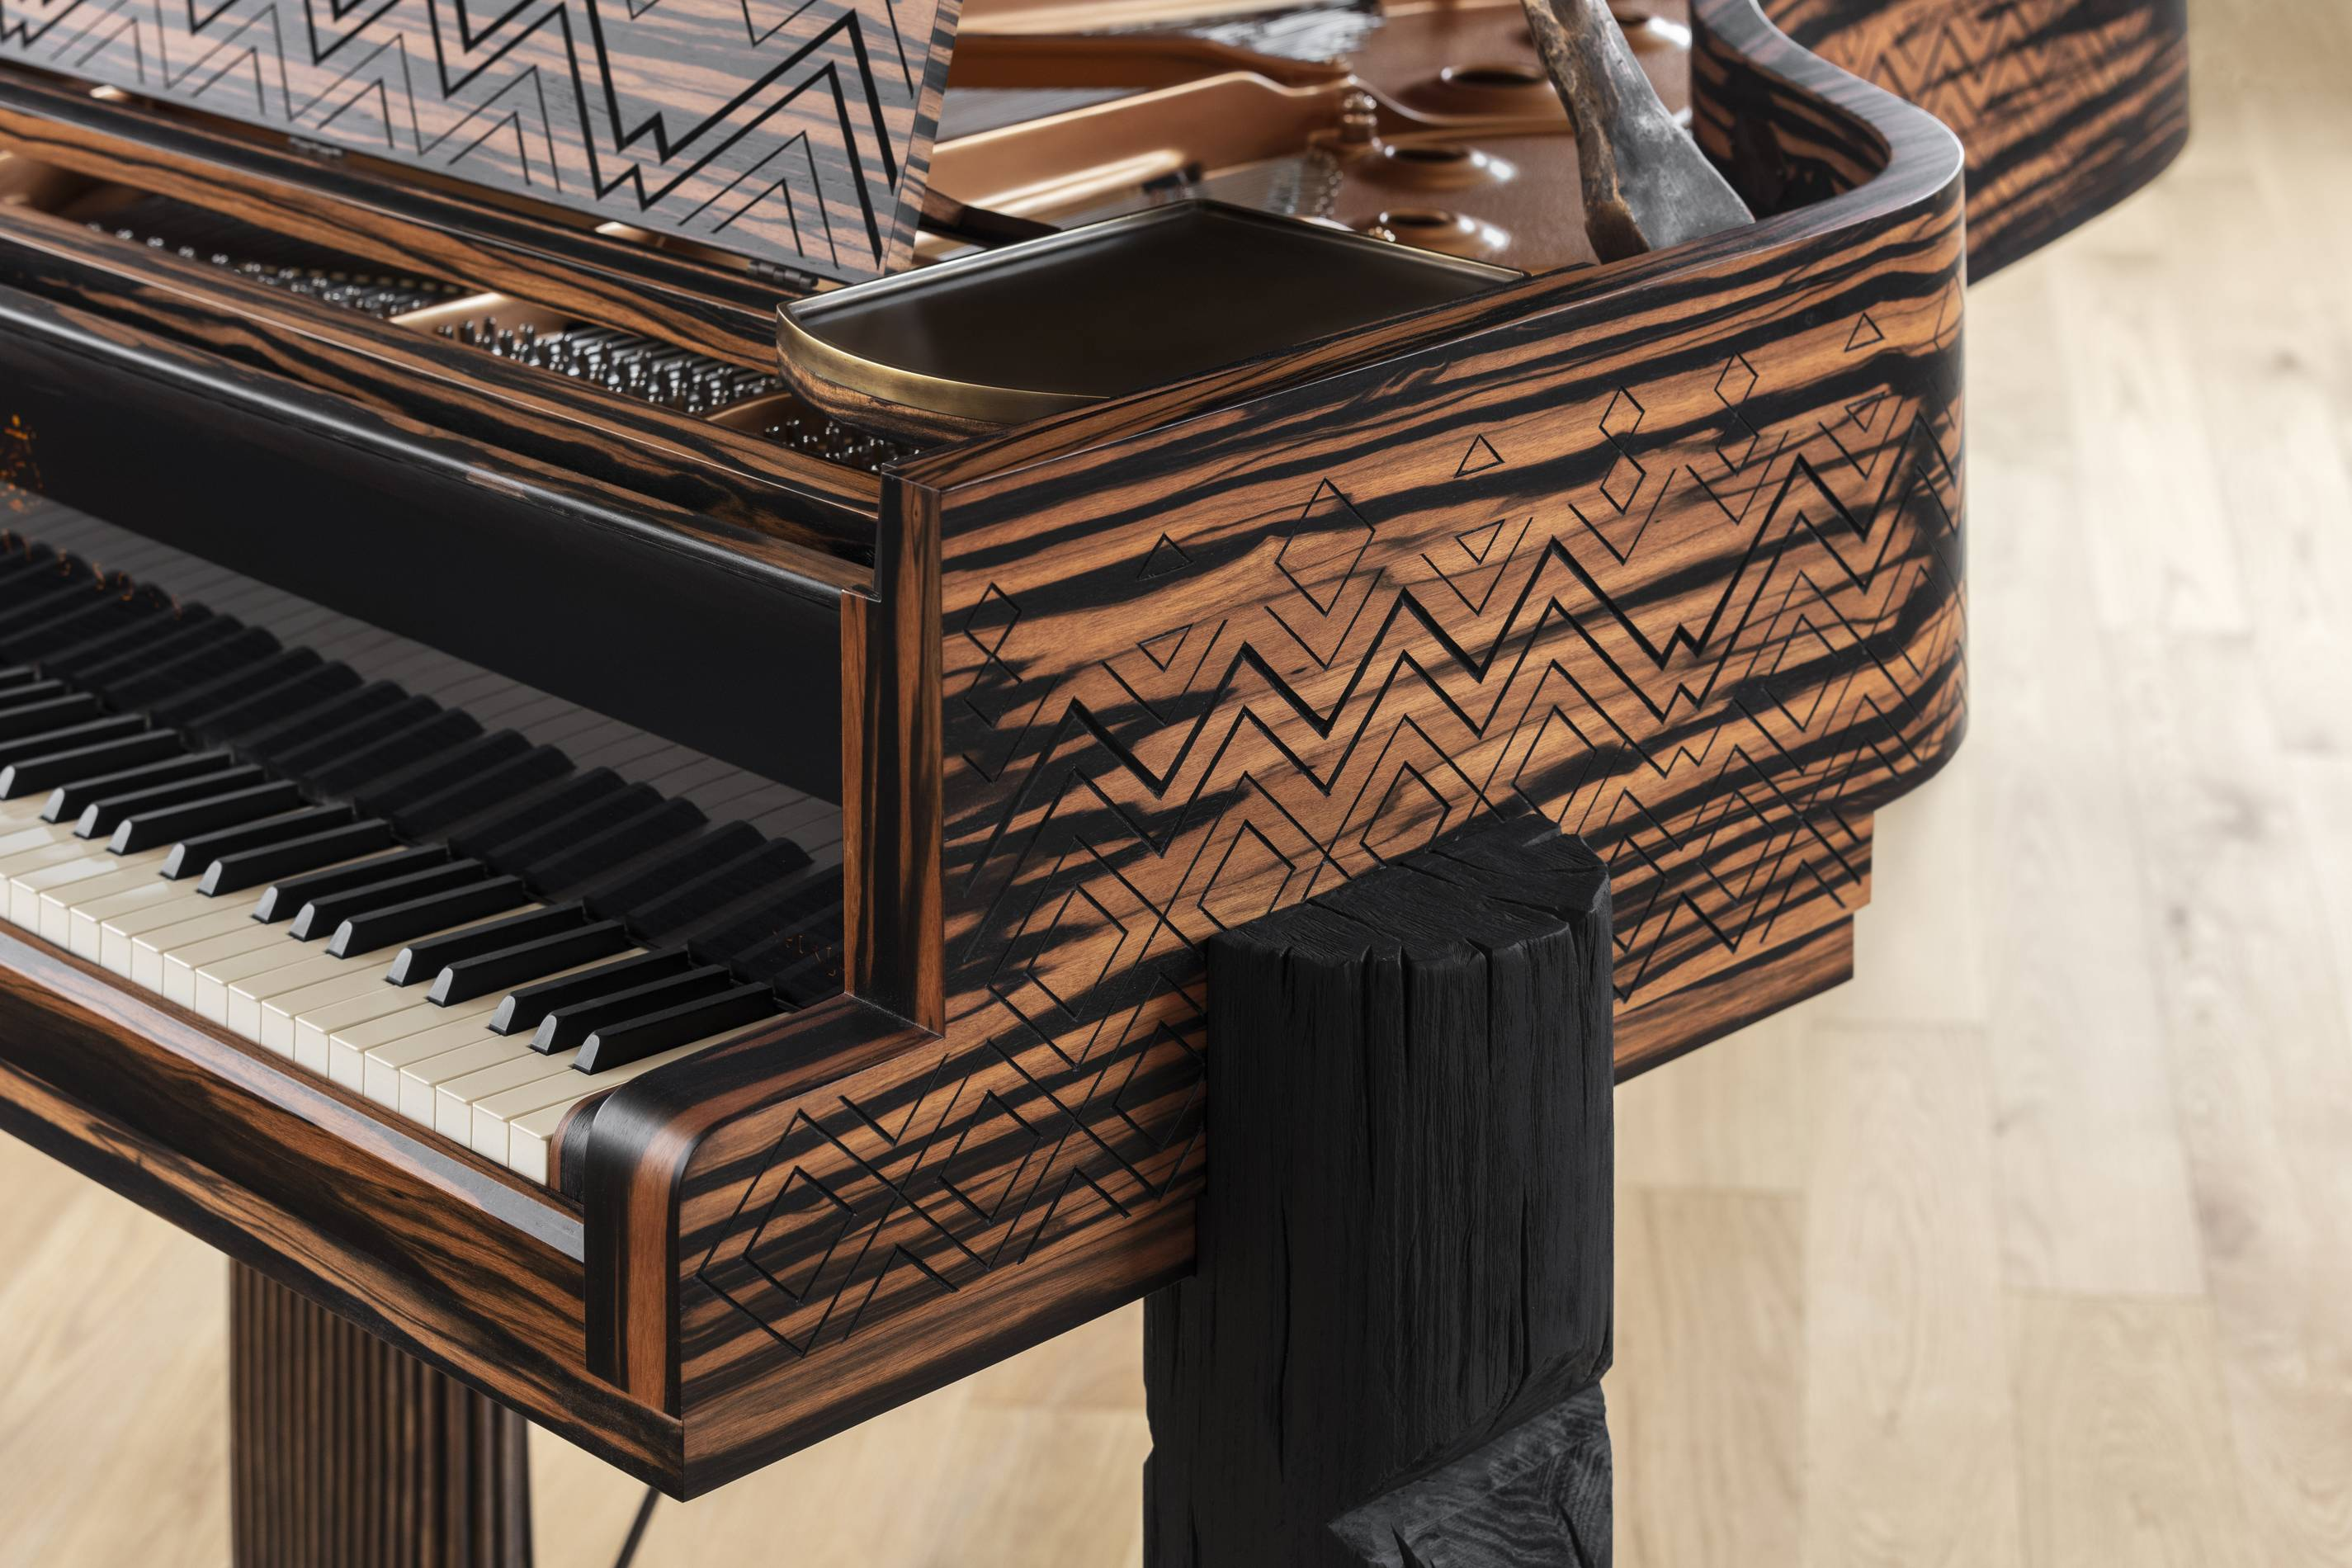 Lenny Kravit's Steinway Piano collaboration